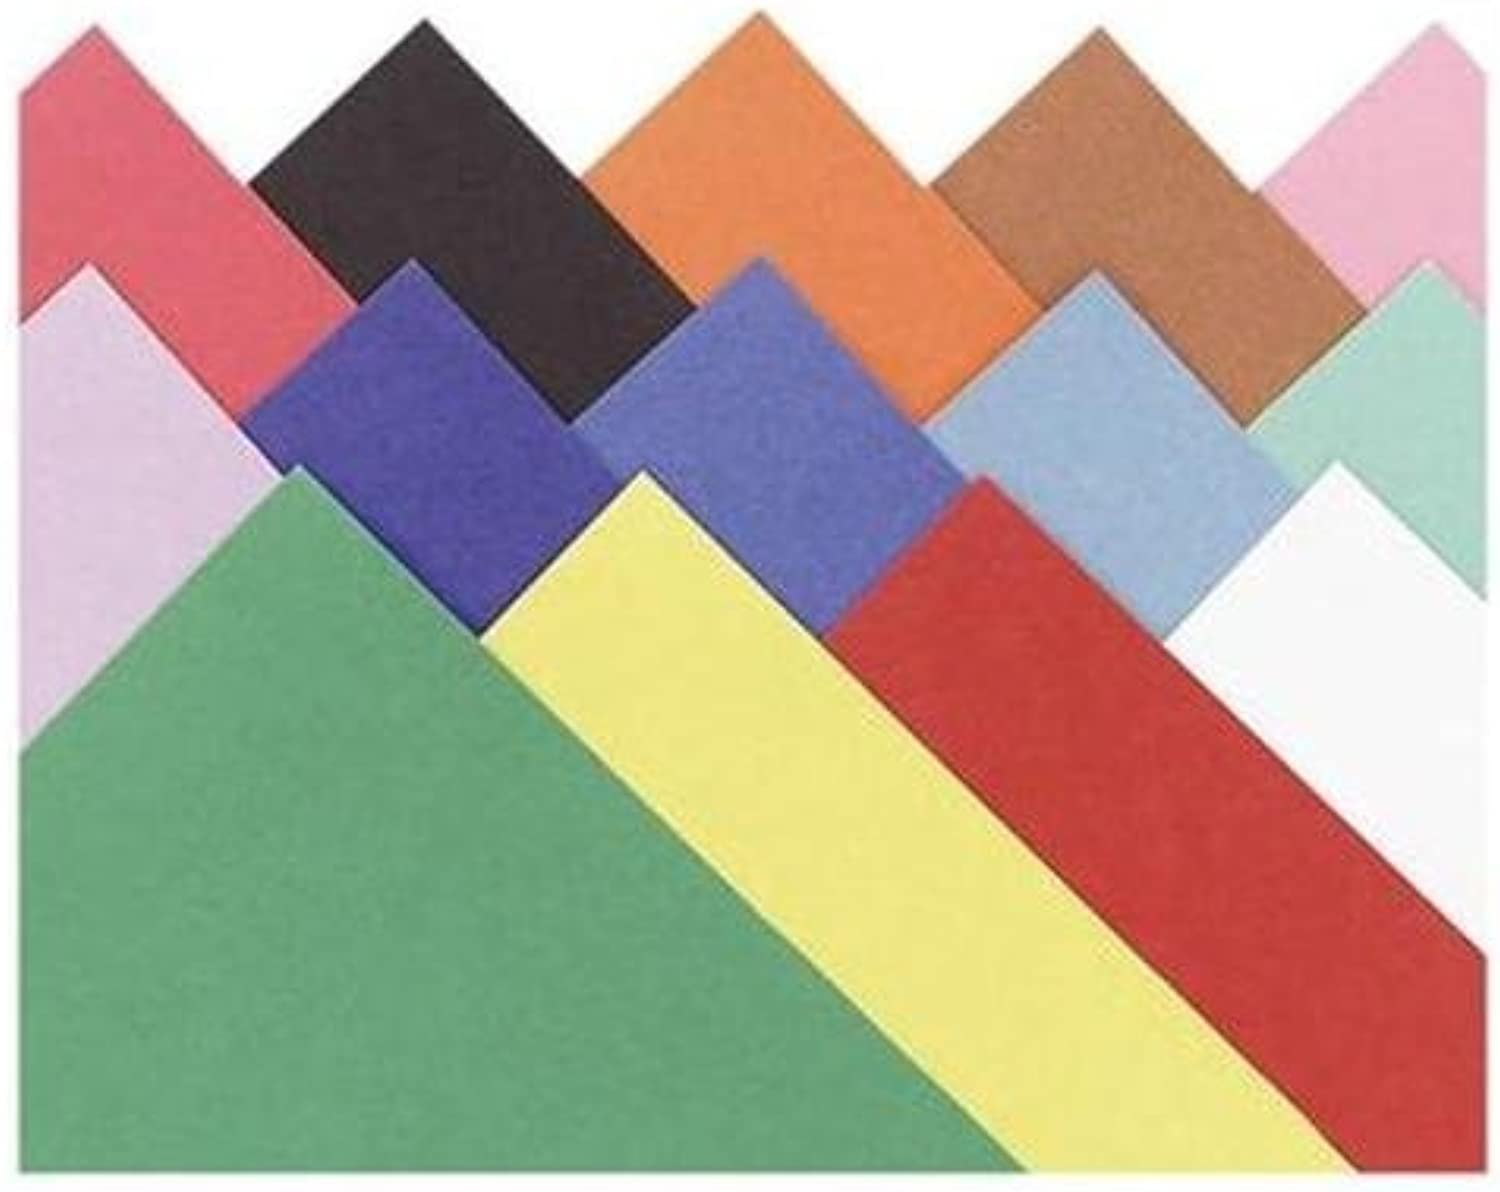 Construction Paper, 9 x12 , 50 PK, Bright White, Sold as 1 Package